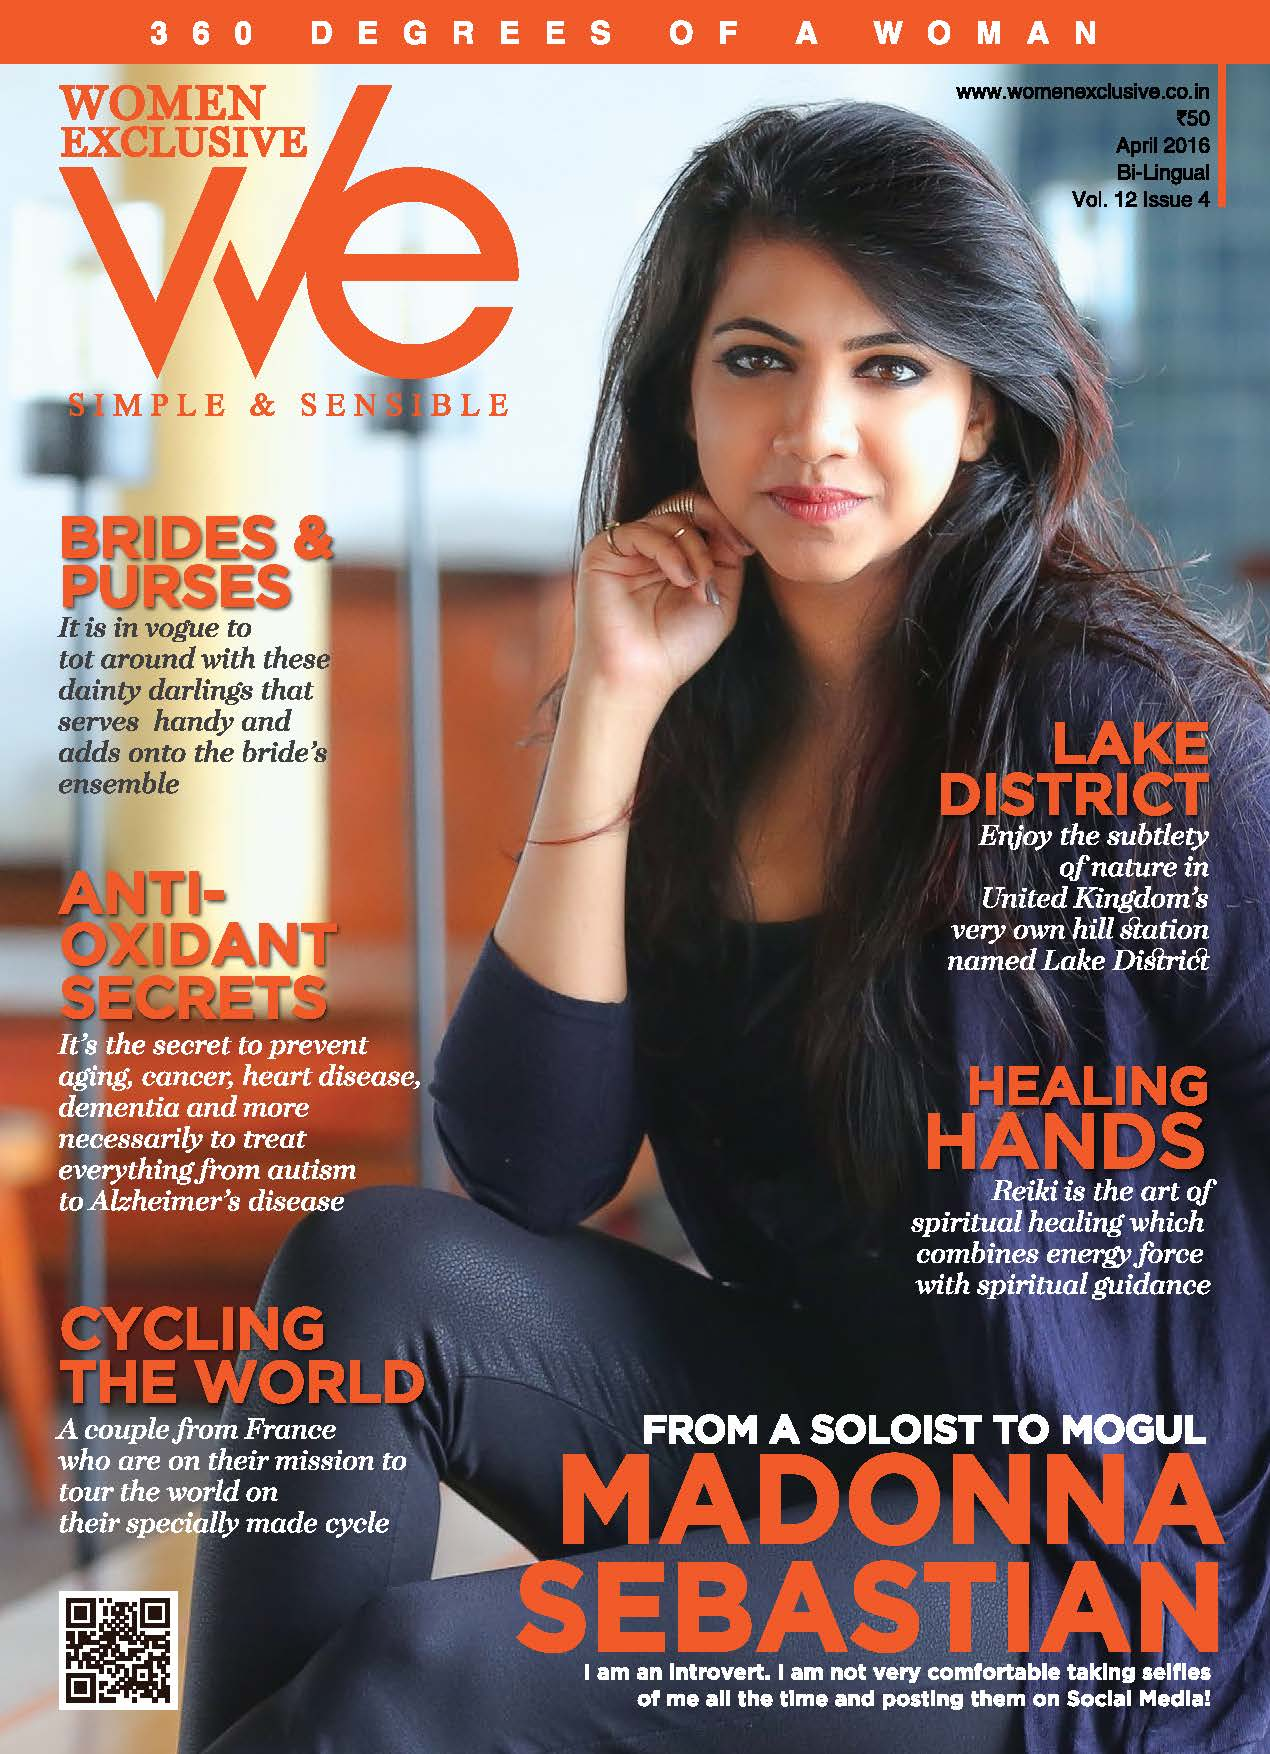 Madonna Sebastian On The Cover Of Women Exclusive Magazine India April 2016